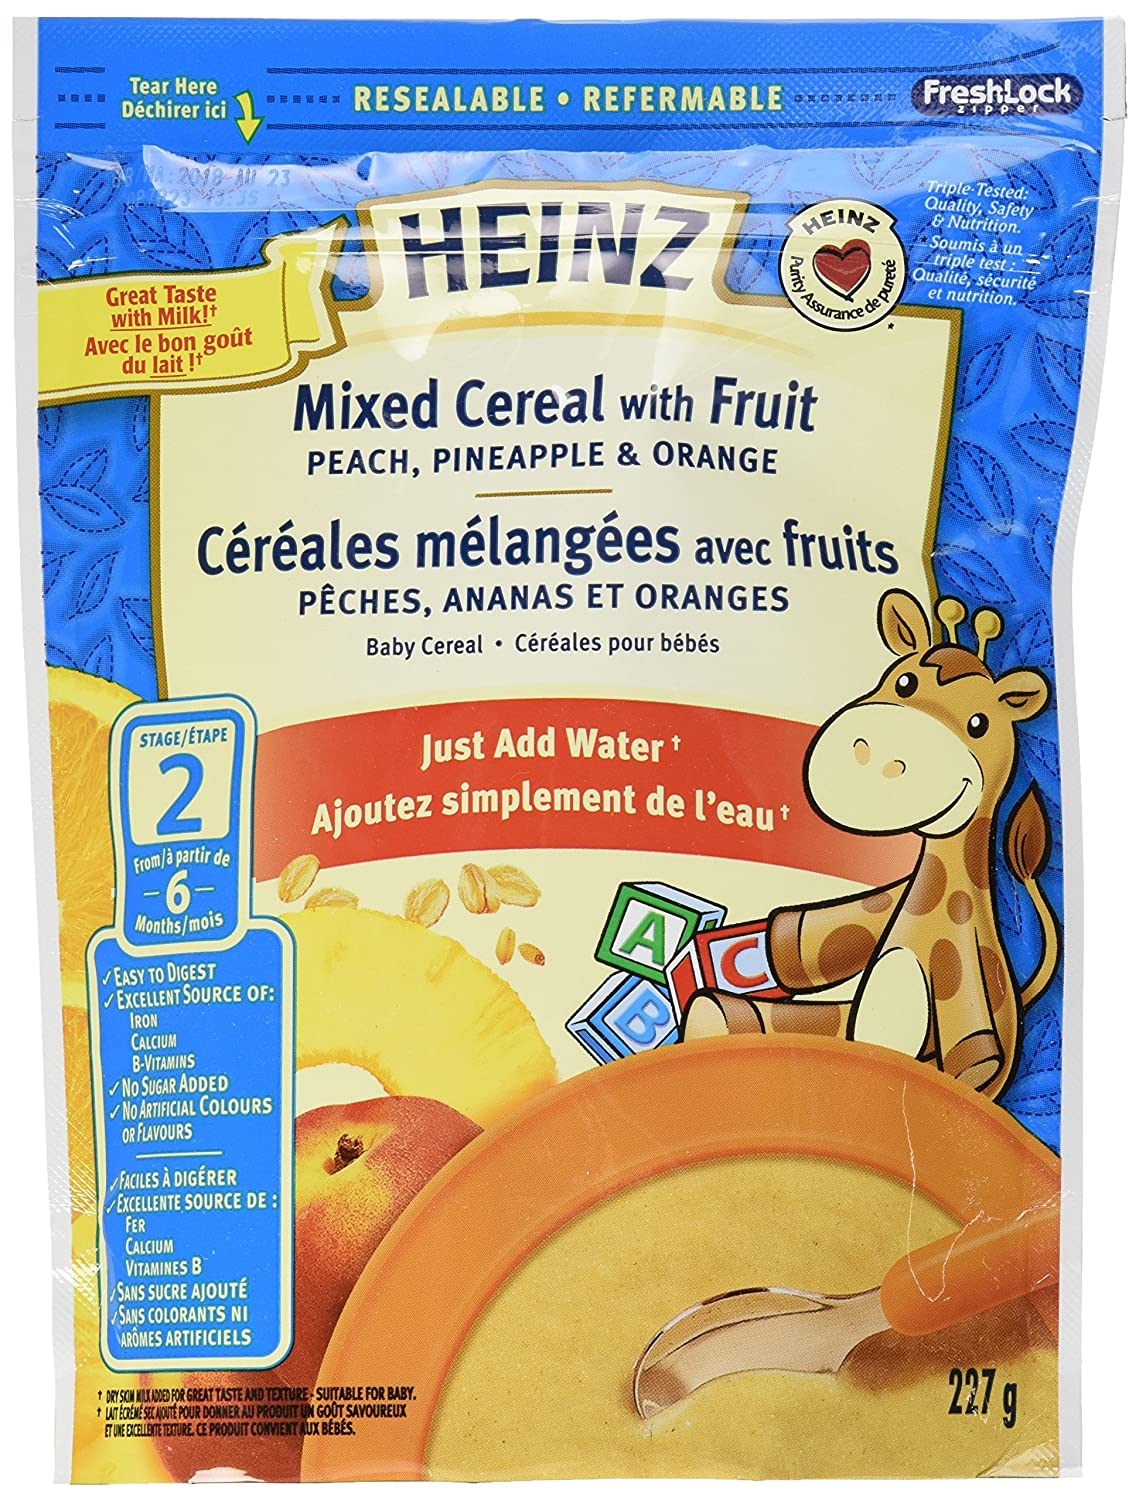 HEINZ Mixed Cereal, 6 Pack, 227G Each Kraft Heinz Canada ULC